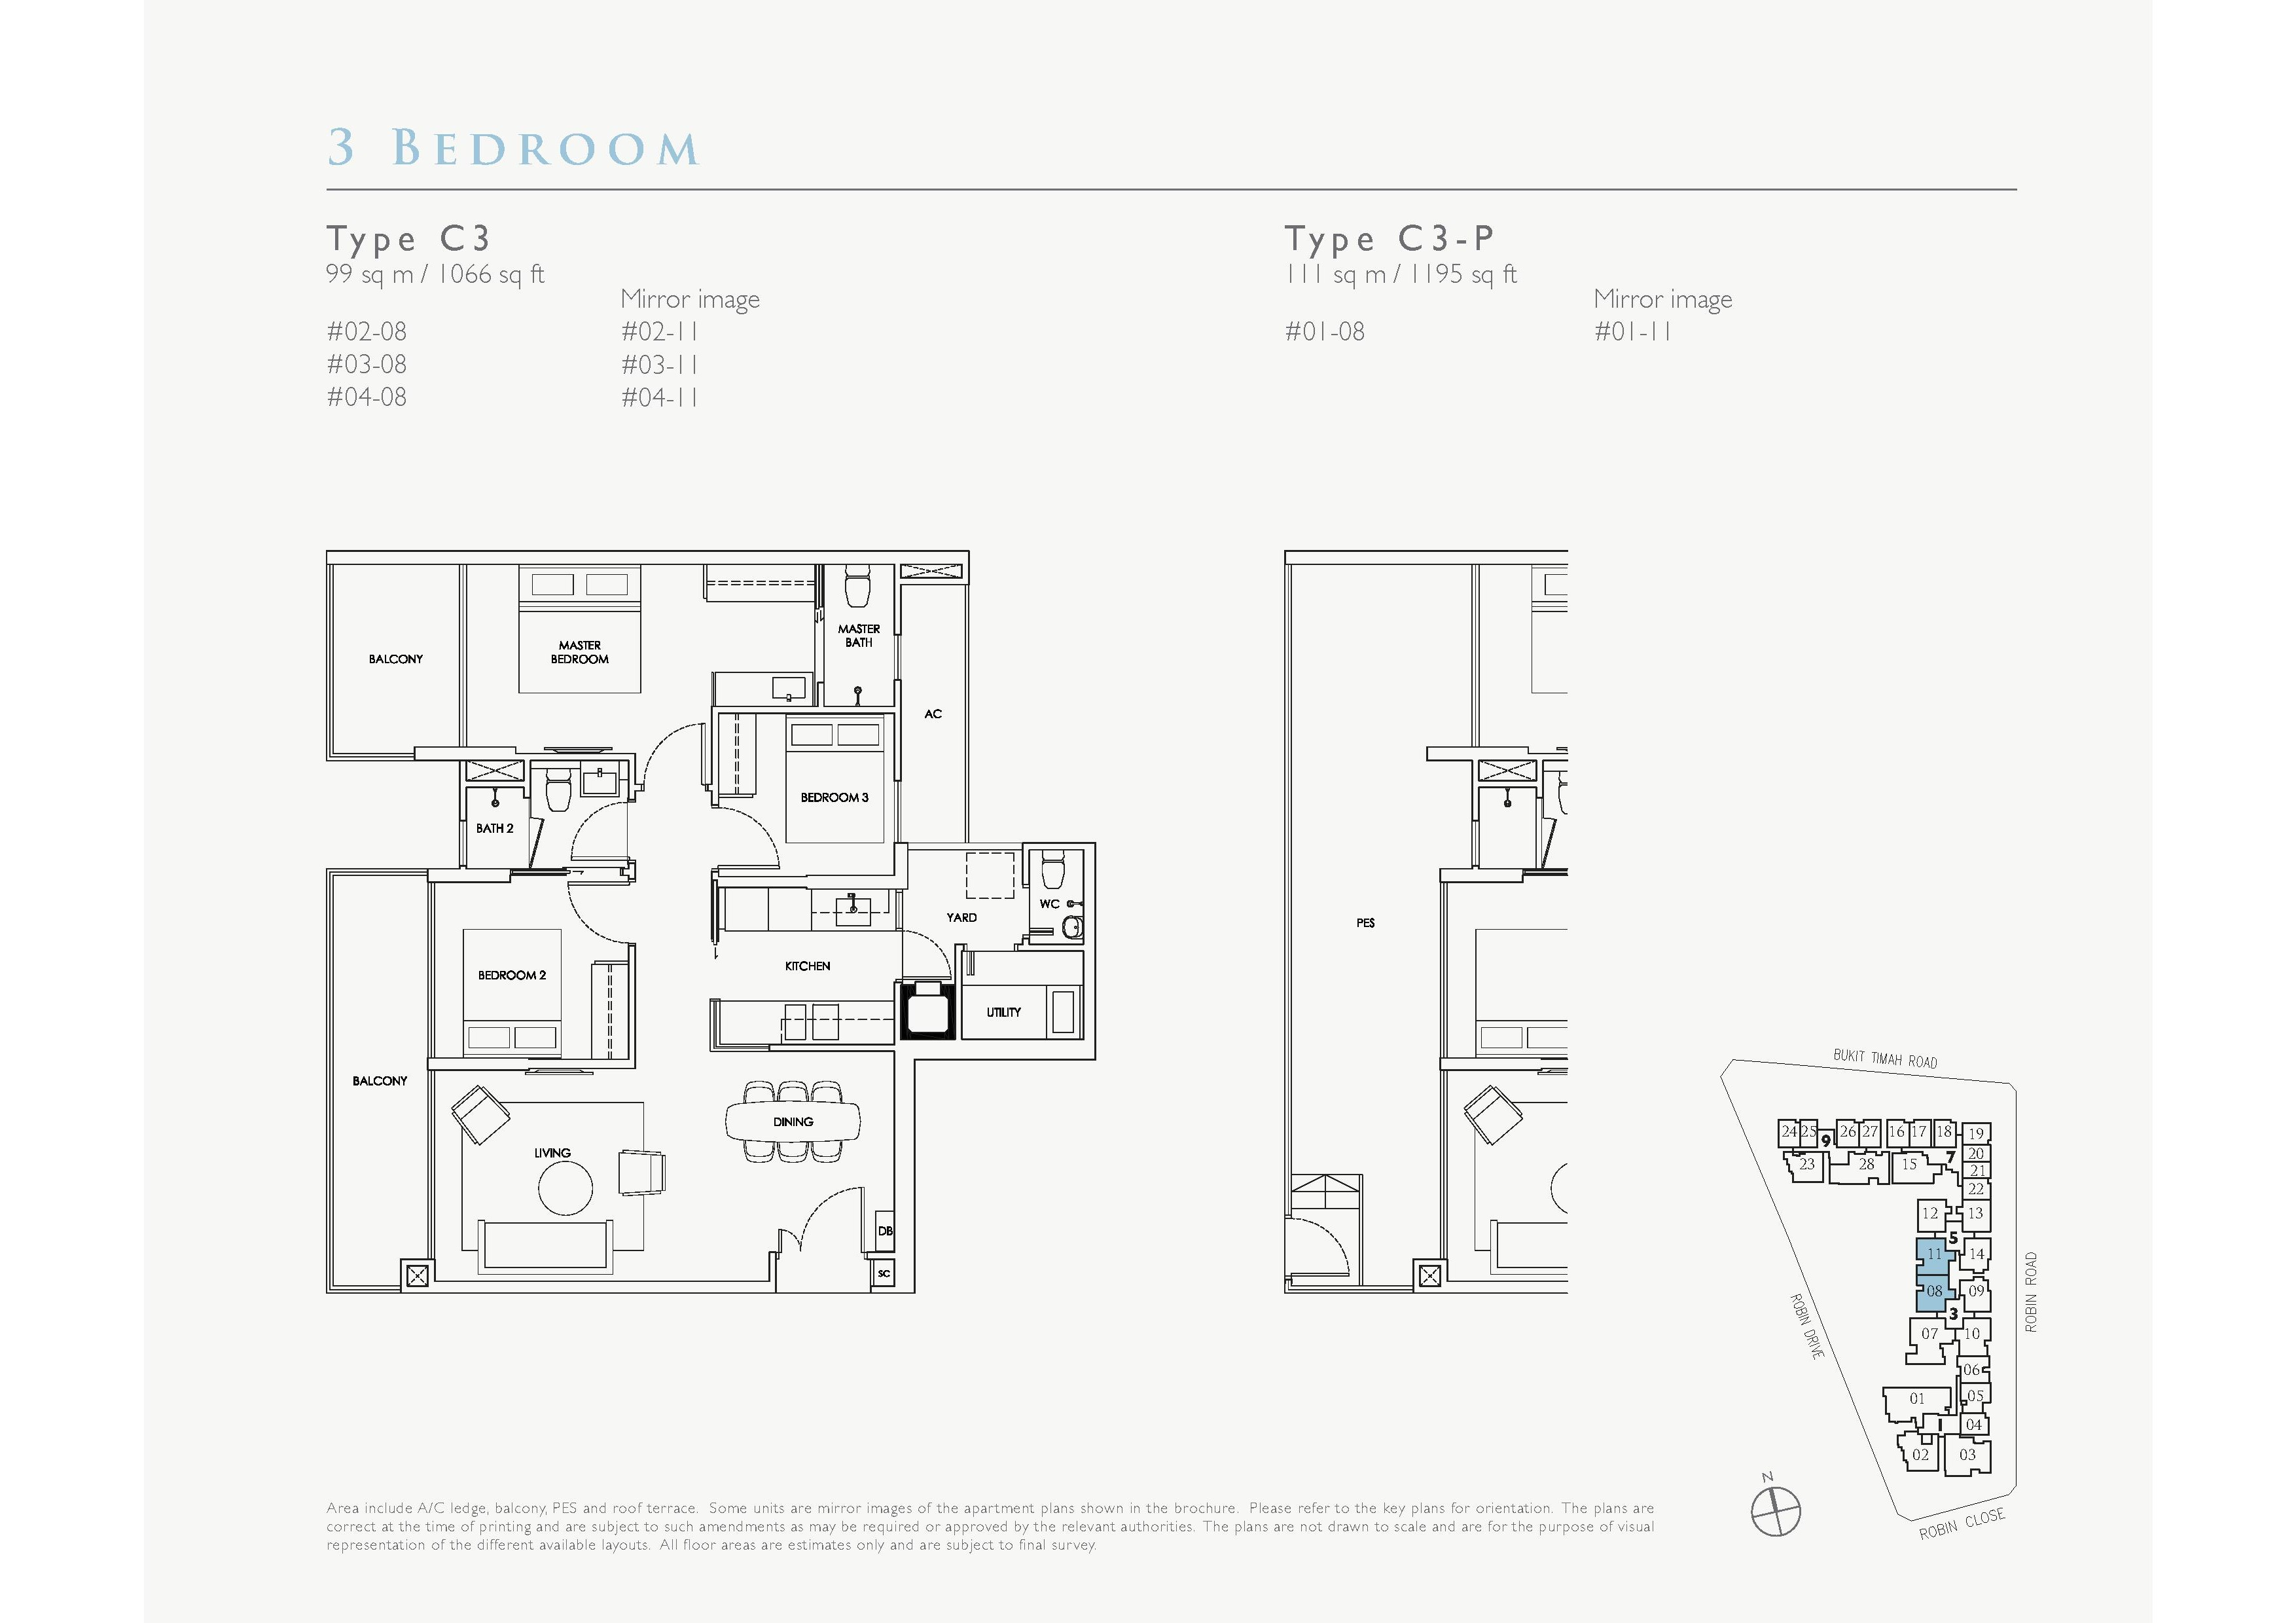 Robin Residences 3 Bedroom Floor Plans Type C3, C3-P